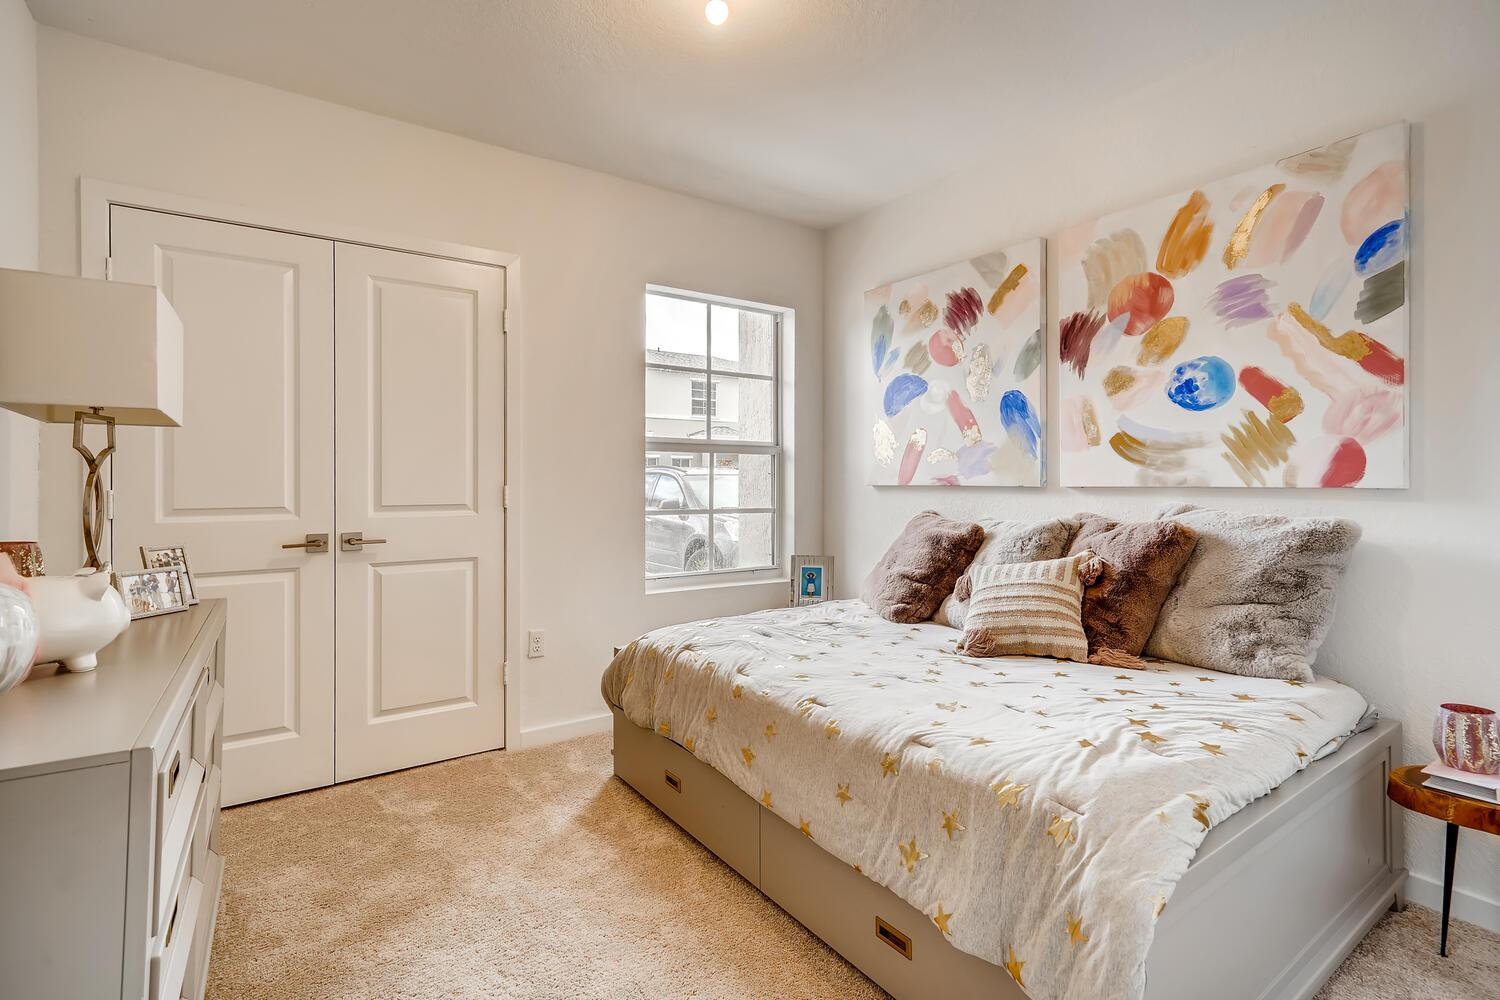 Bedroom featured in the Marathon By D.R. Horton in Miami-Dade County, FL